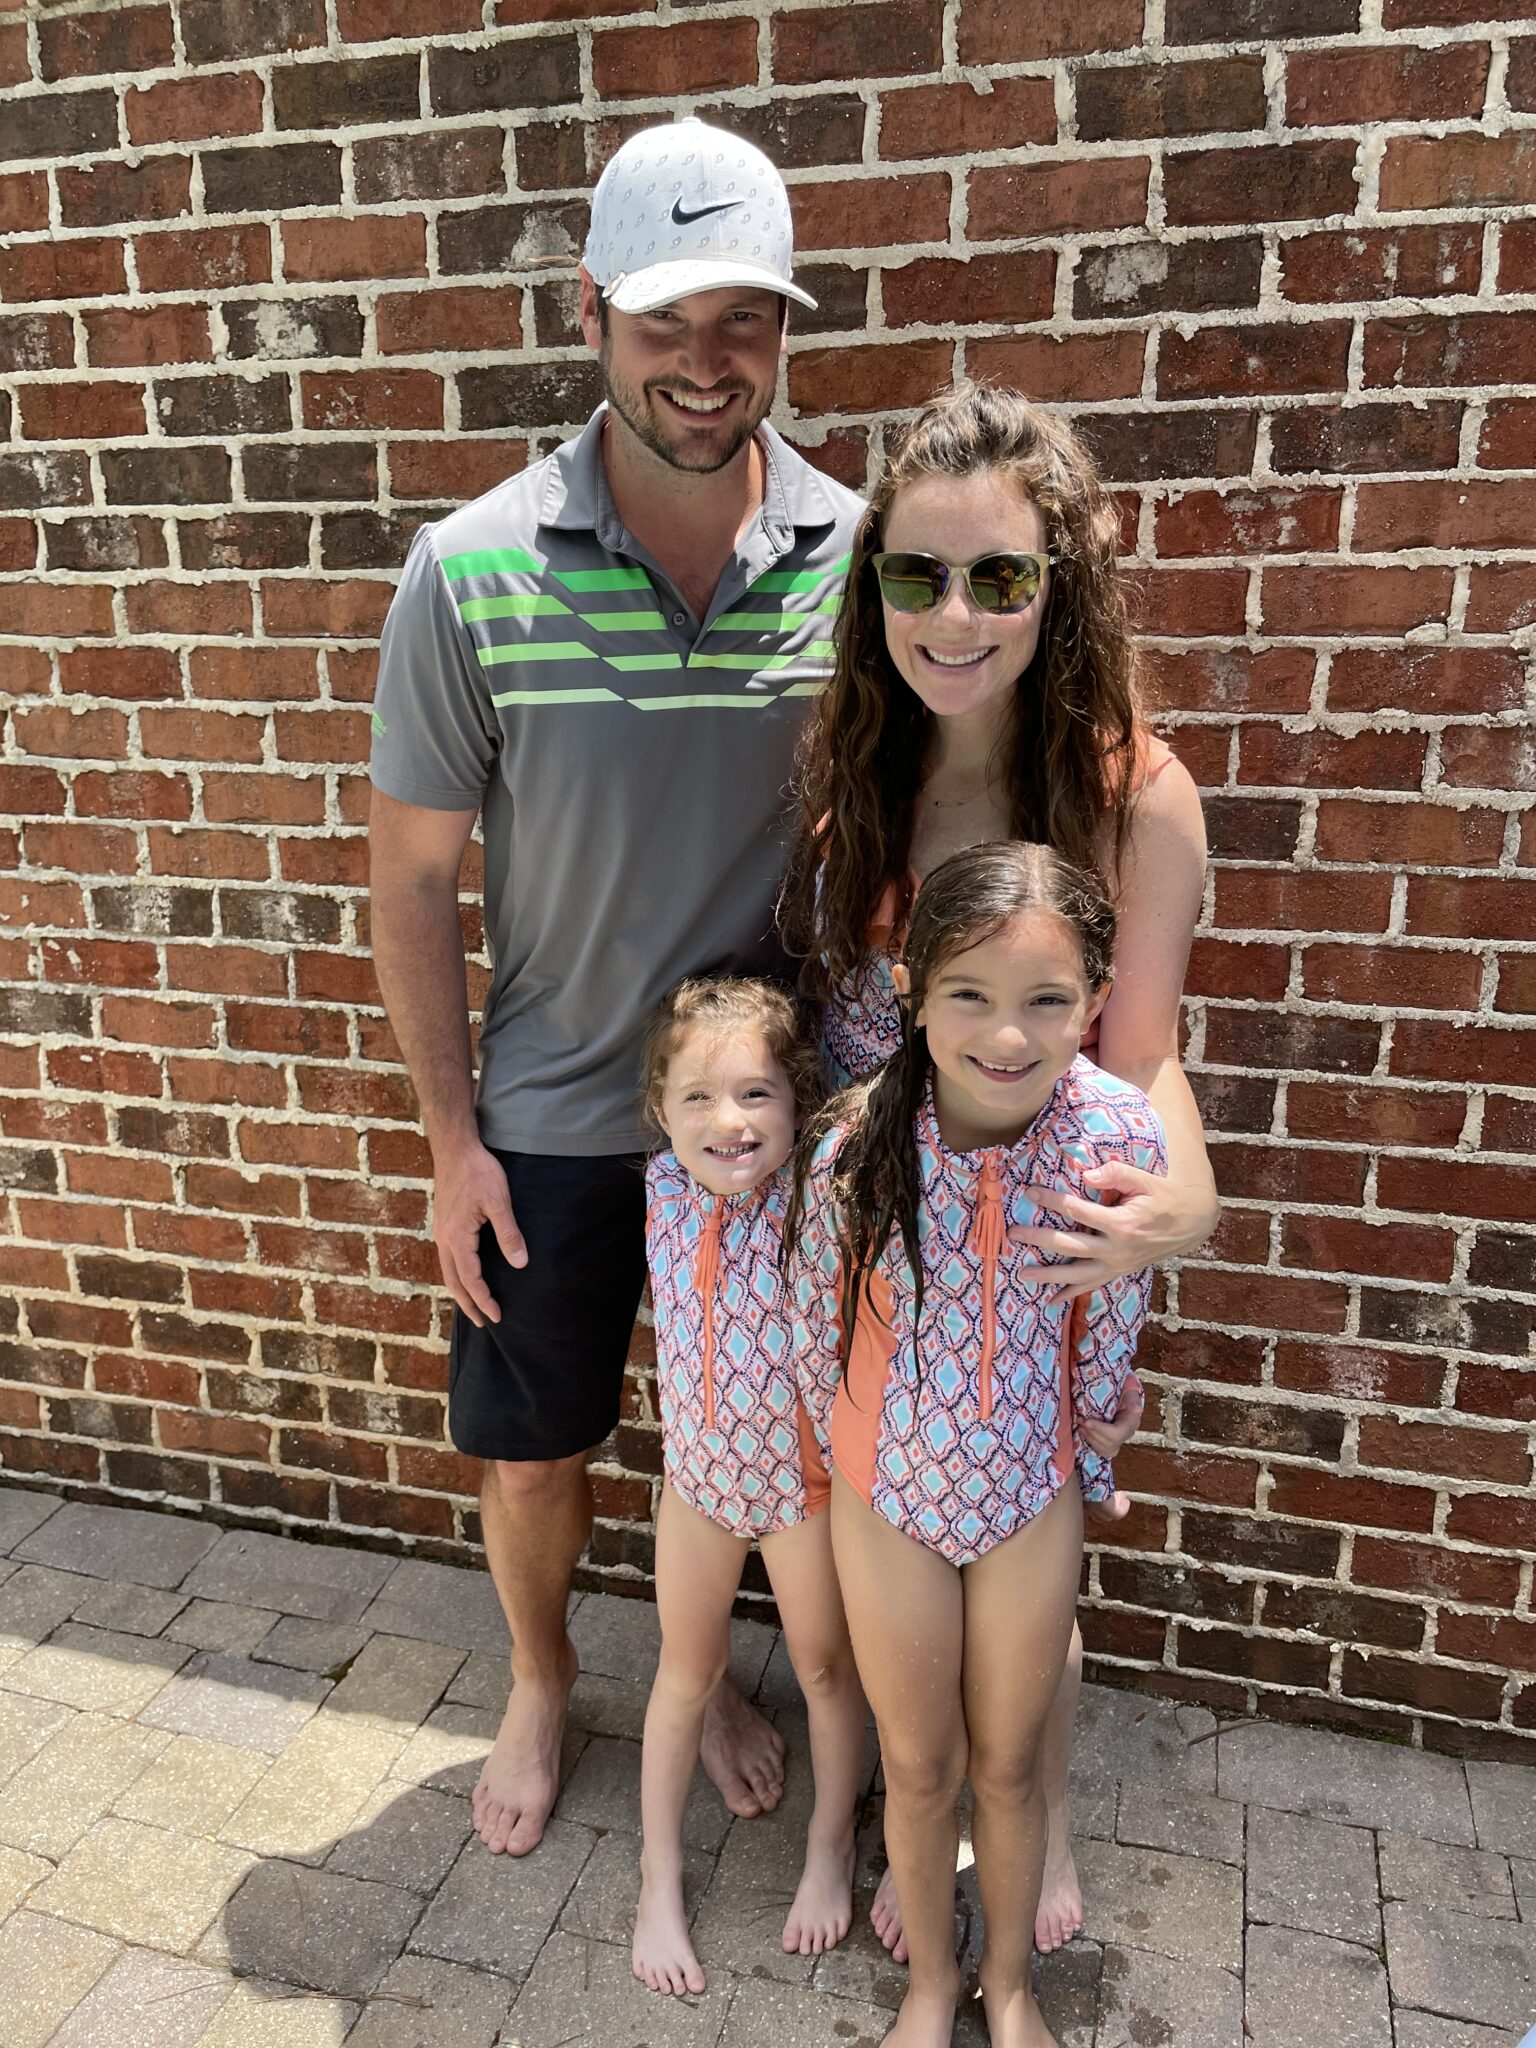 Dad in golf clothes and Mom in matching swimwear with daughters